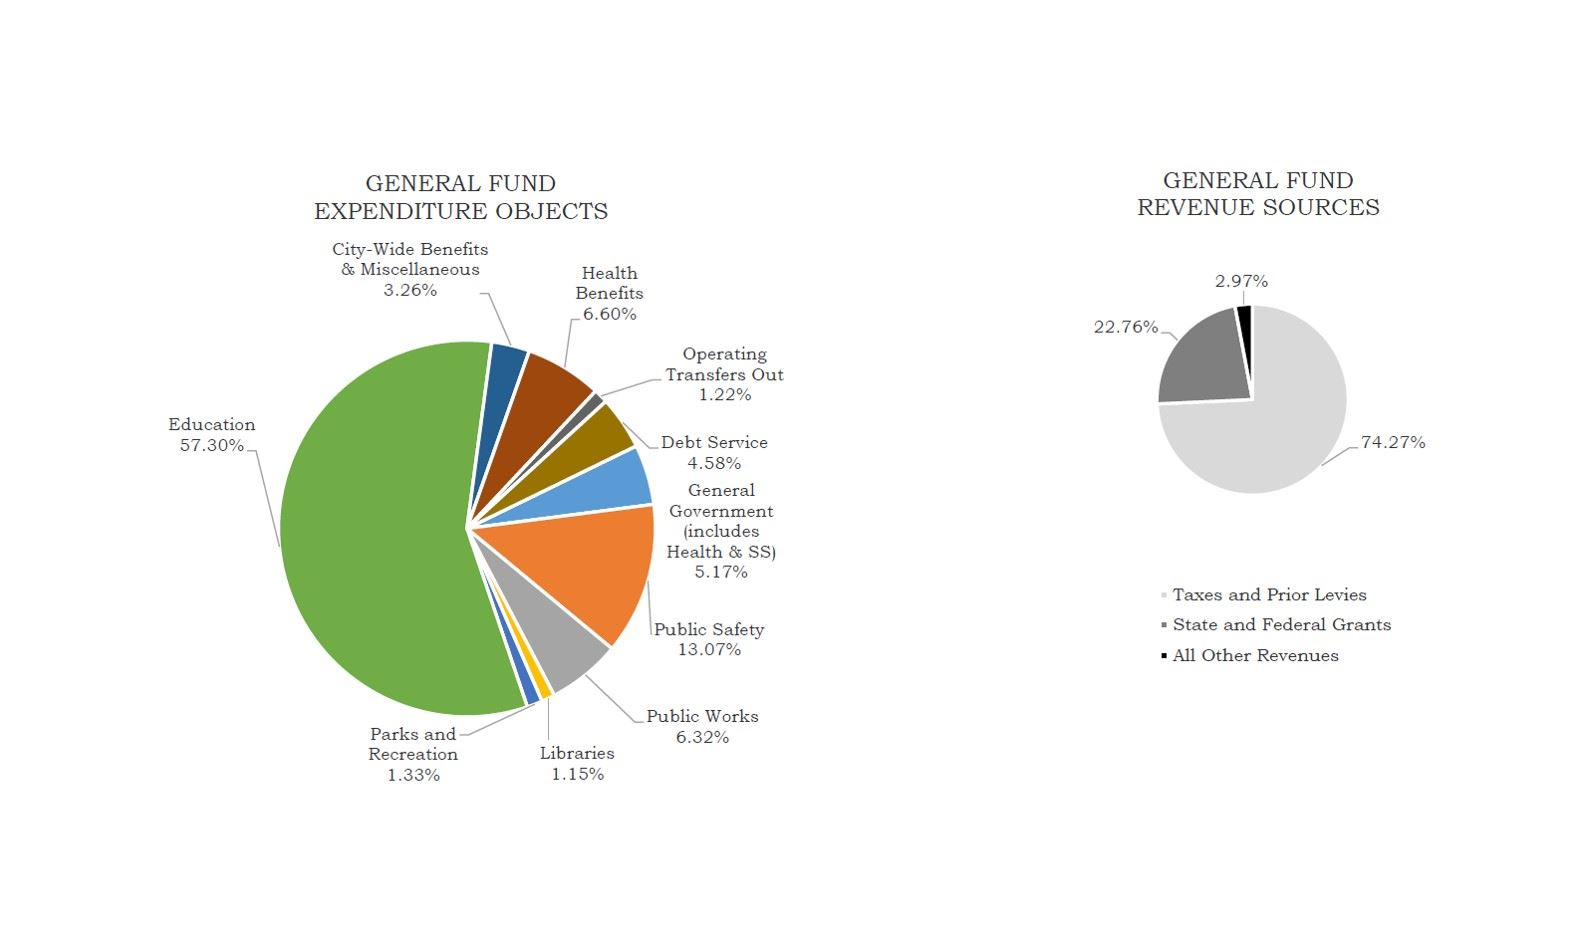 2018-2019 General Fund Expenditures and Revenue Sources